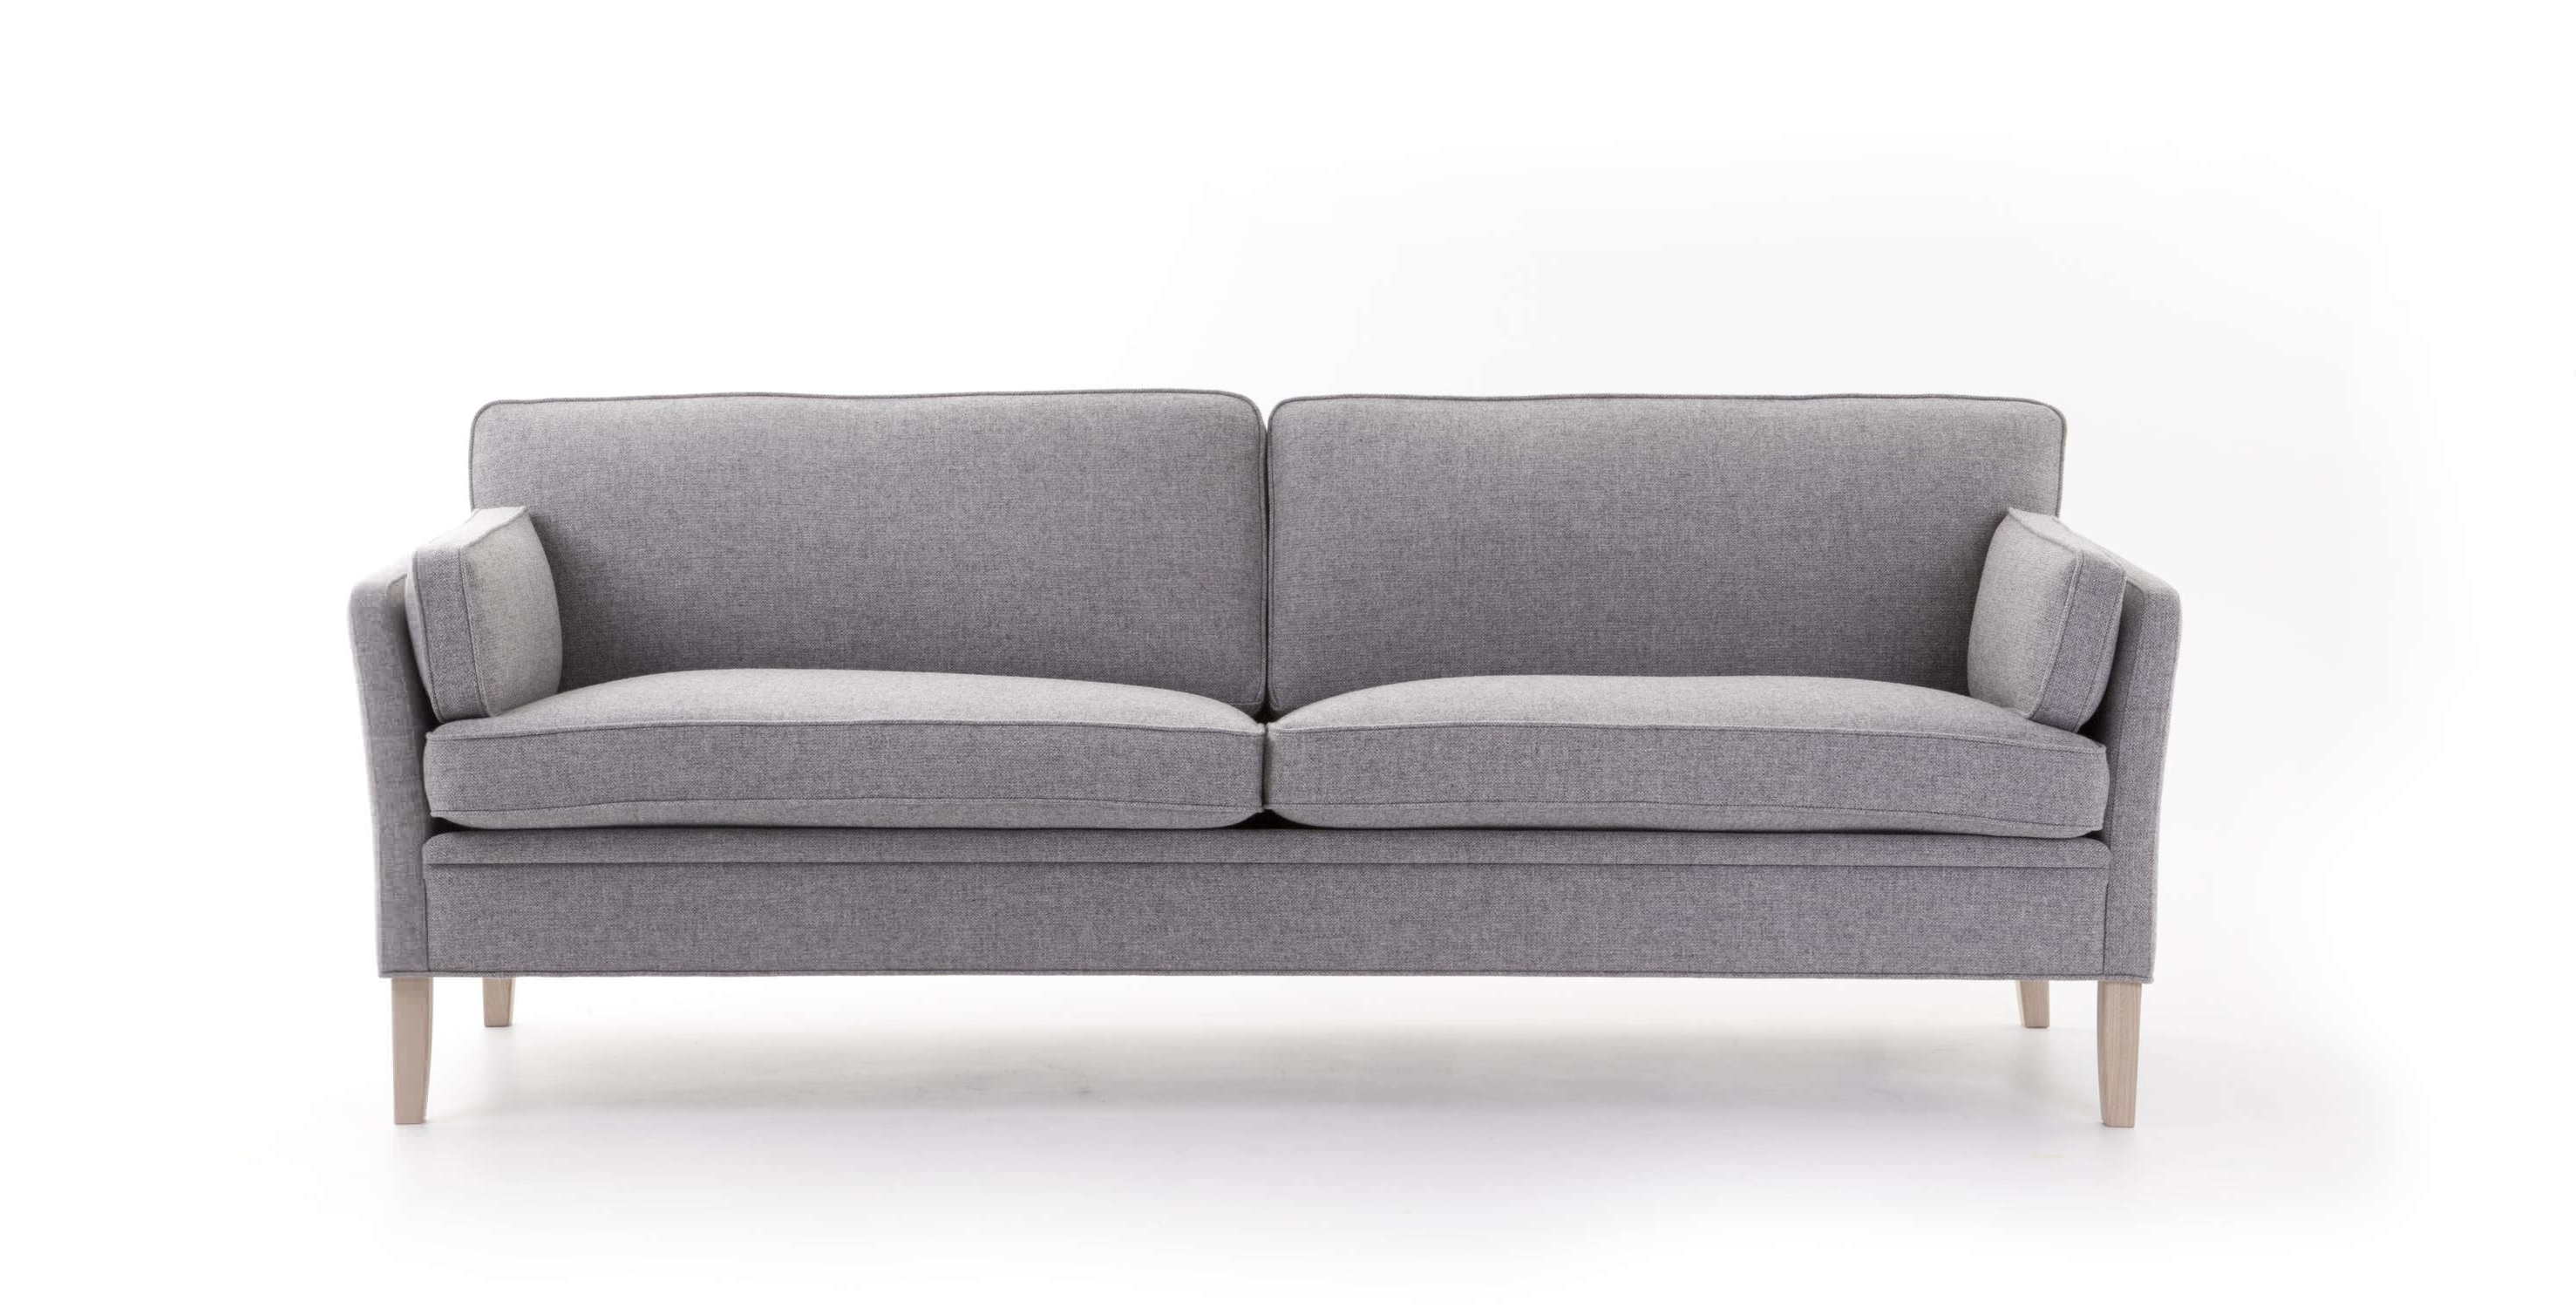 Well Known Sofas With Removable Cover Intended For Removable Cover Sofa – Home And Textiles (View 18 of 20)